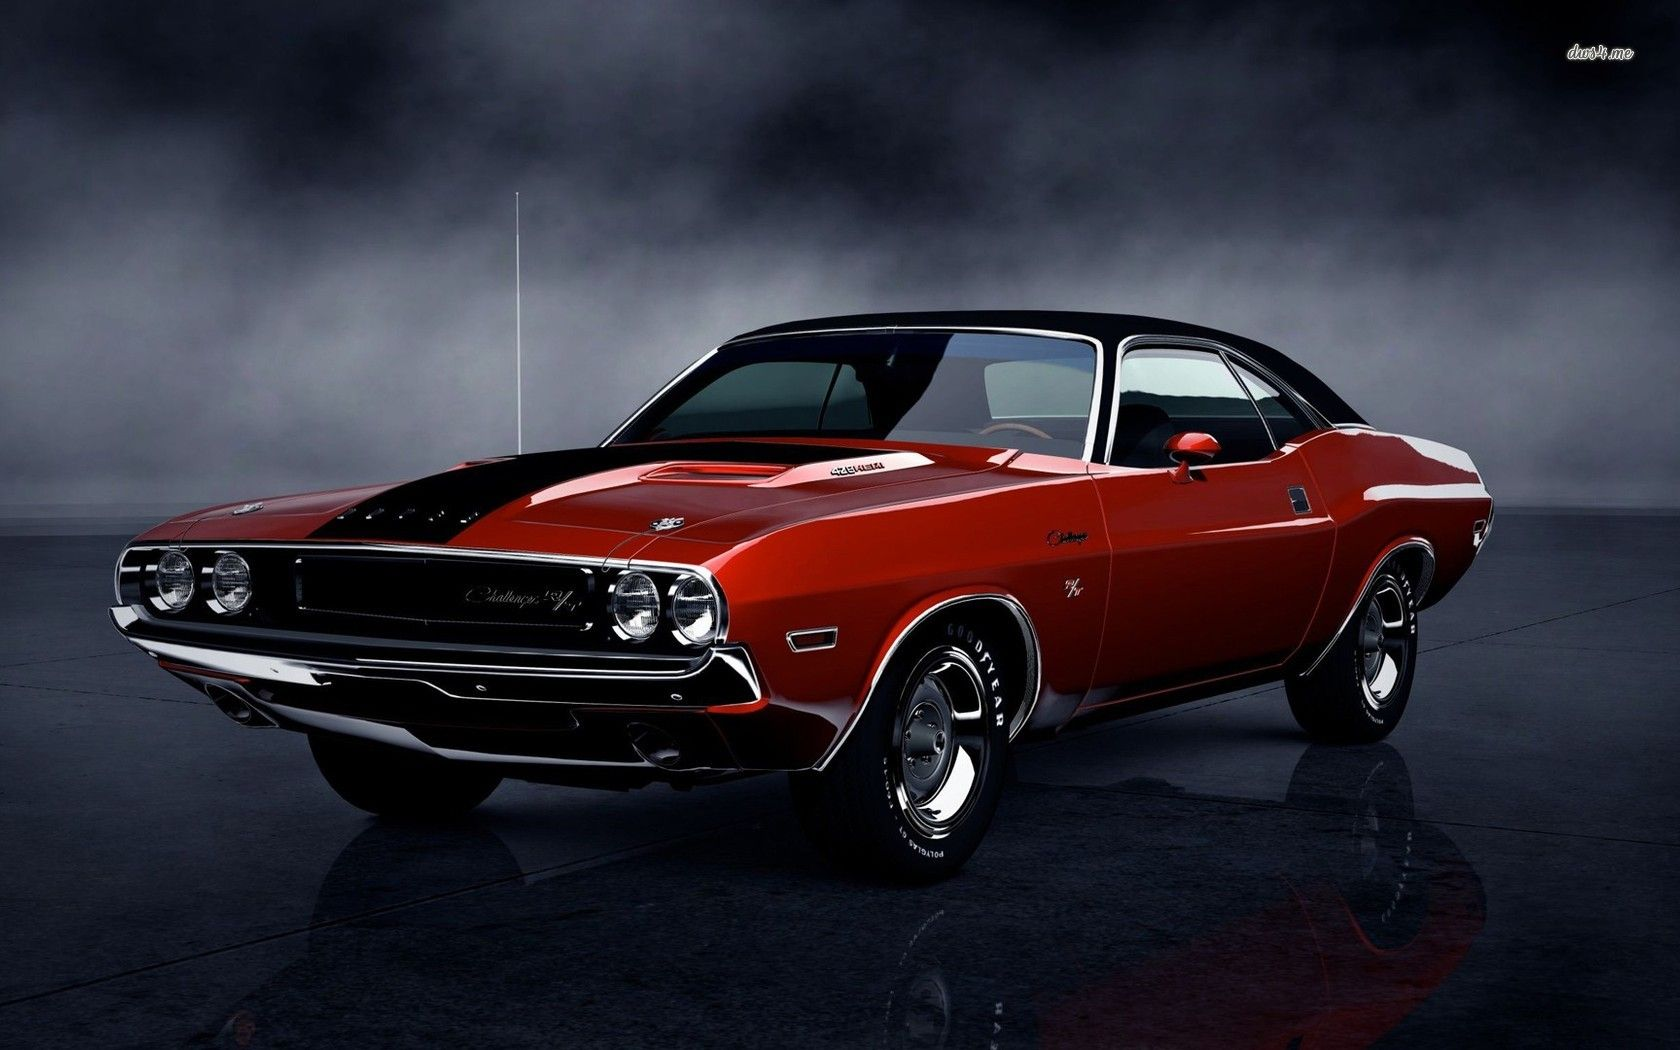 Dodge challenger rt classic wallpaper http wallautos com dodge